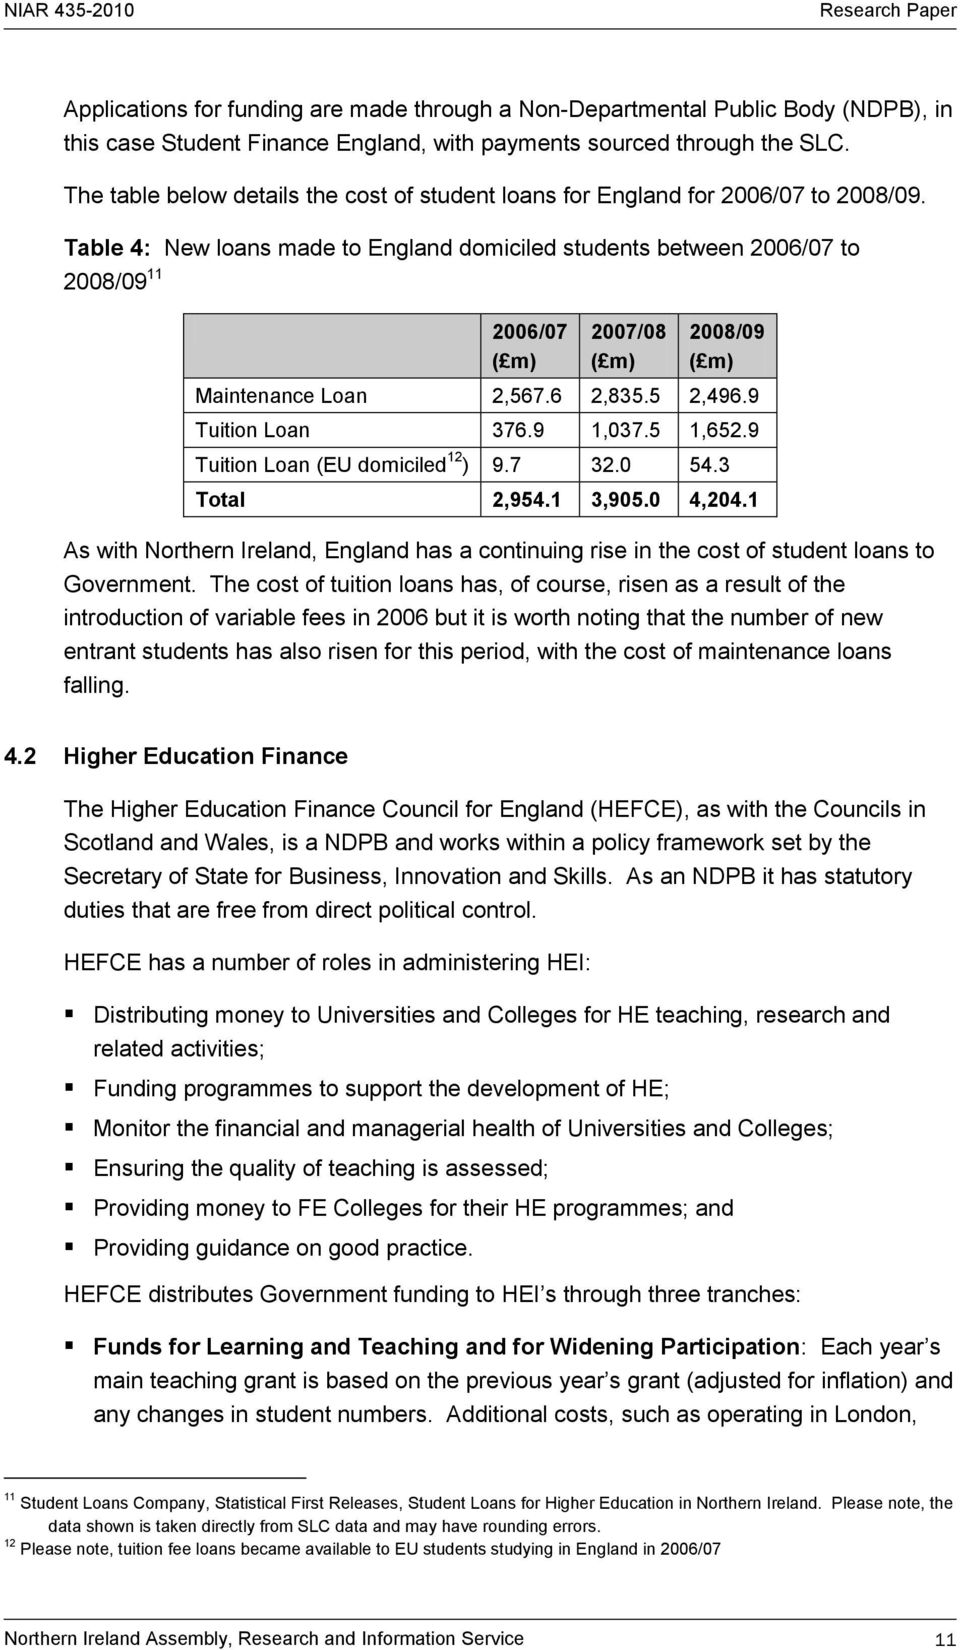 Table 4: New loans made to England domiciled students between 2006/07 to 2008/09 11 2006/07 2007/08 2008/09 Maintenance Loan 2,567.6 2,835.5 2,496.9 Tuition Loan 376.9 1,037.5 1,652.